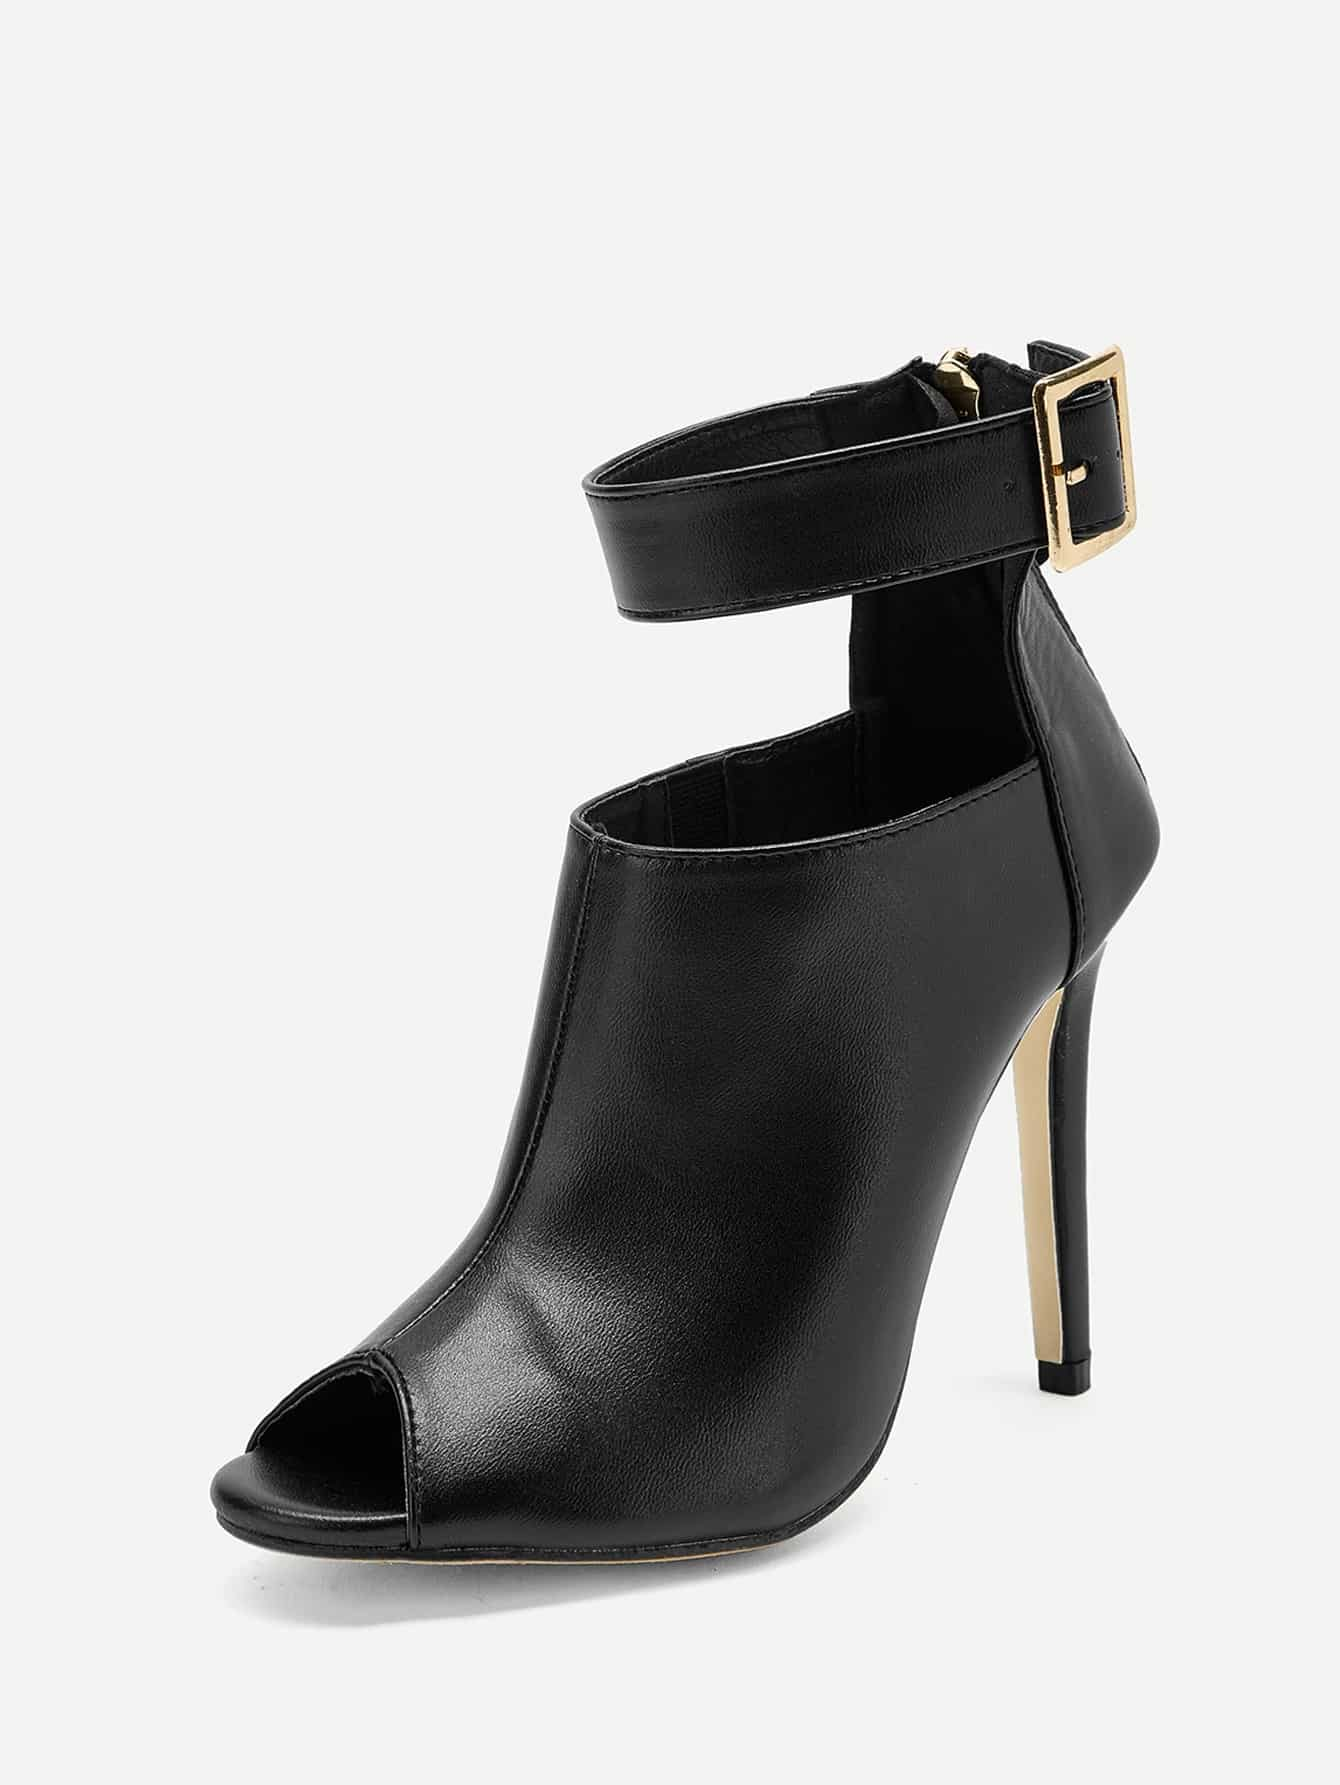 Solid Ankle Strap Stiletto  Heels - FLJ CORPORATIONS